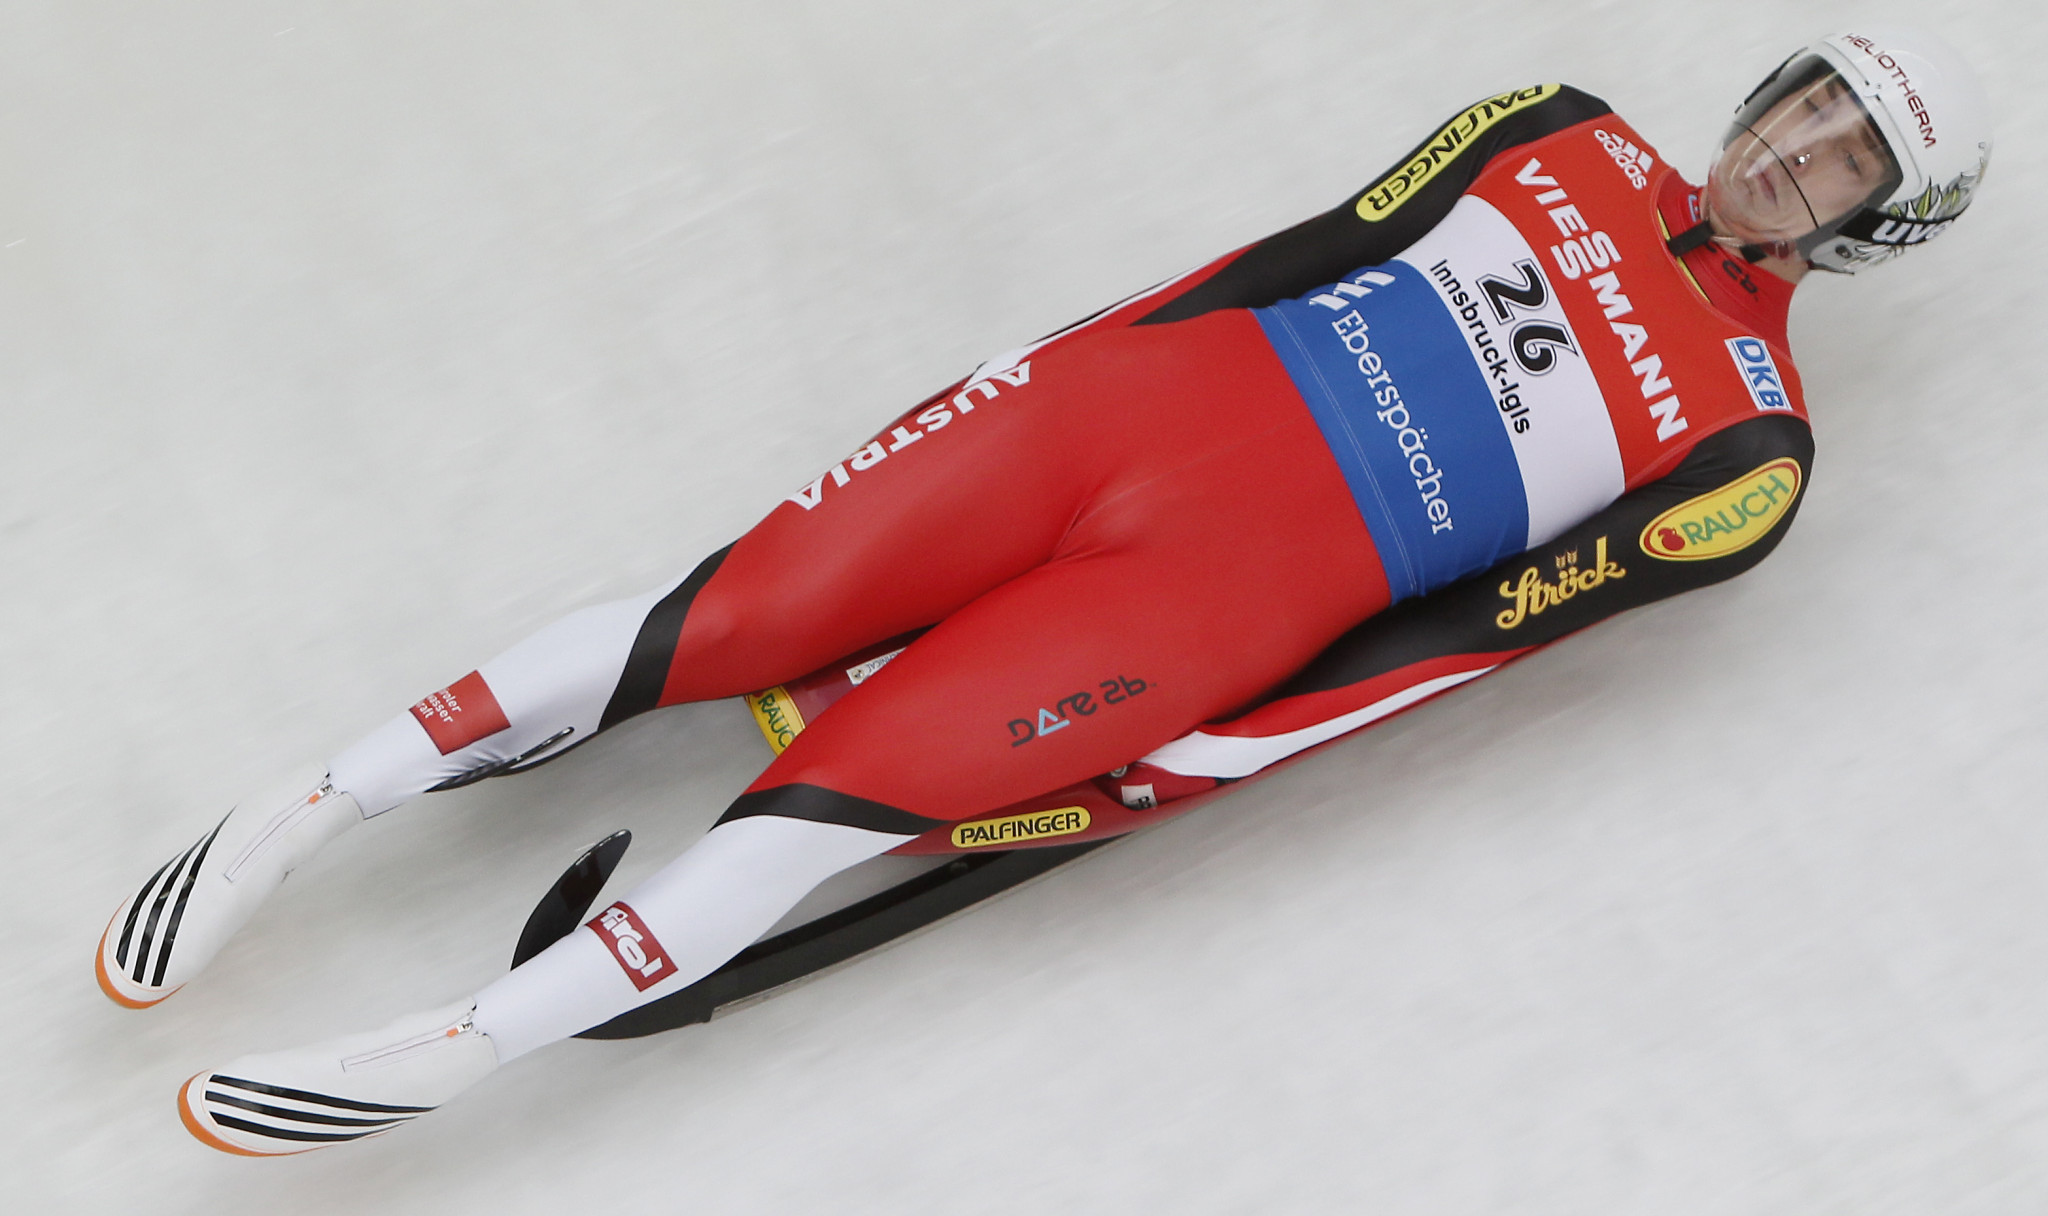 Egger earns maiden Luge World Cup win in Königssee after competition abandoned during second run